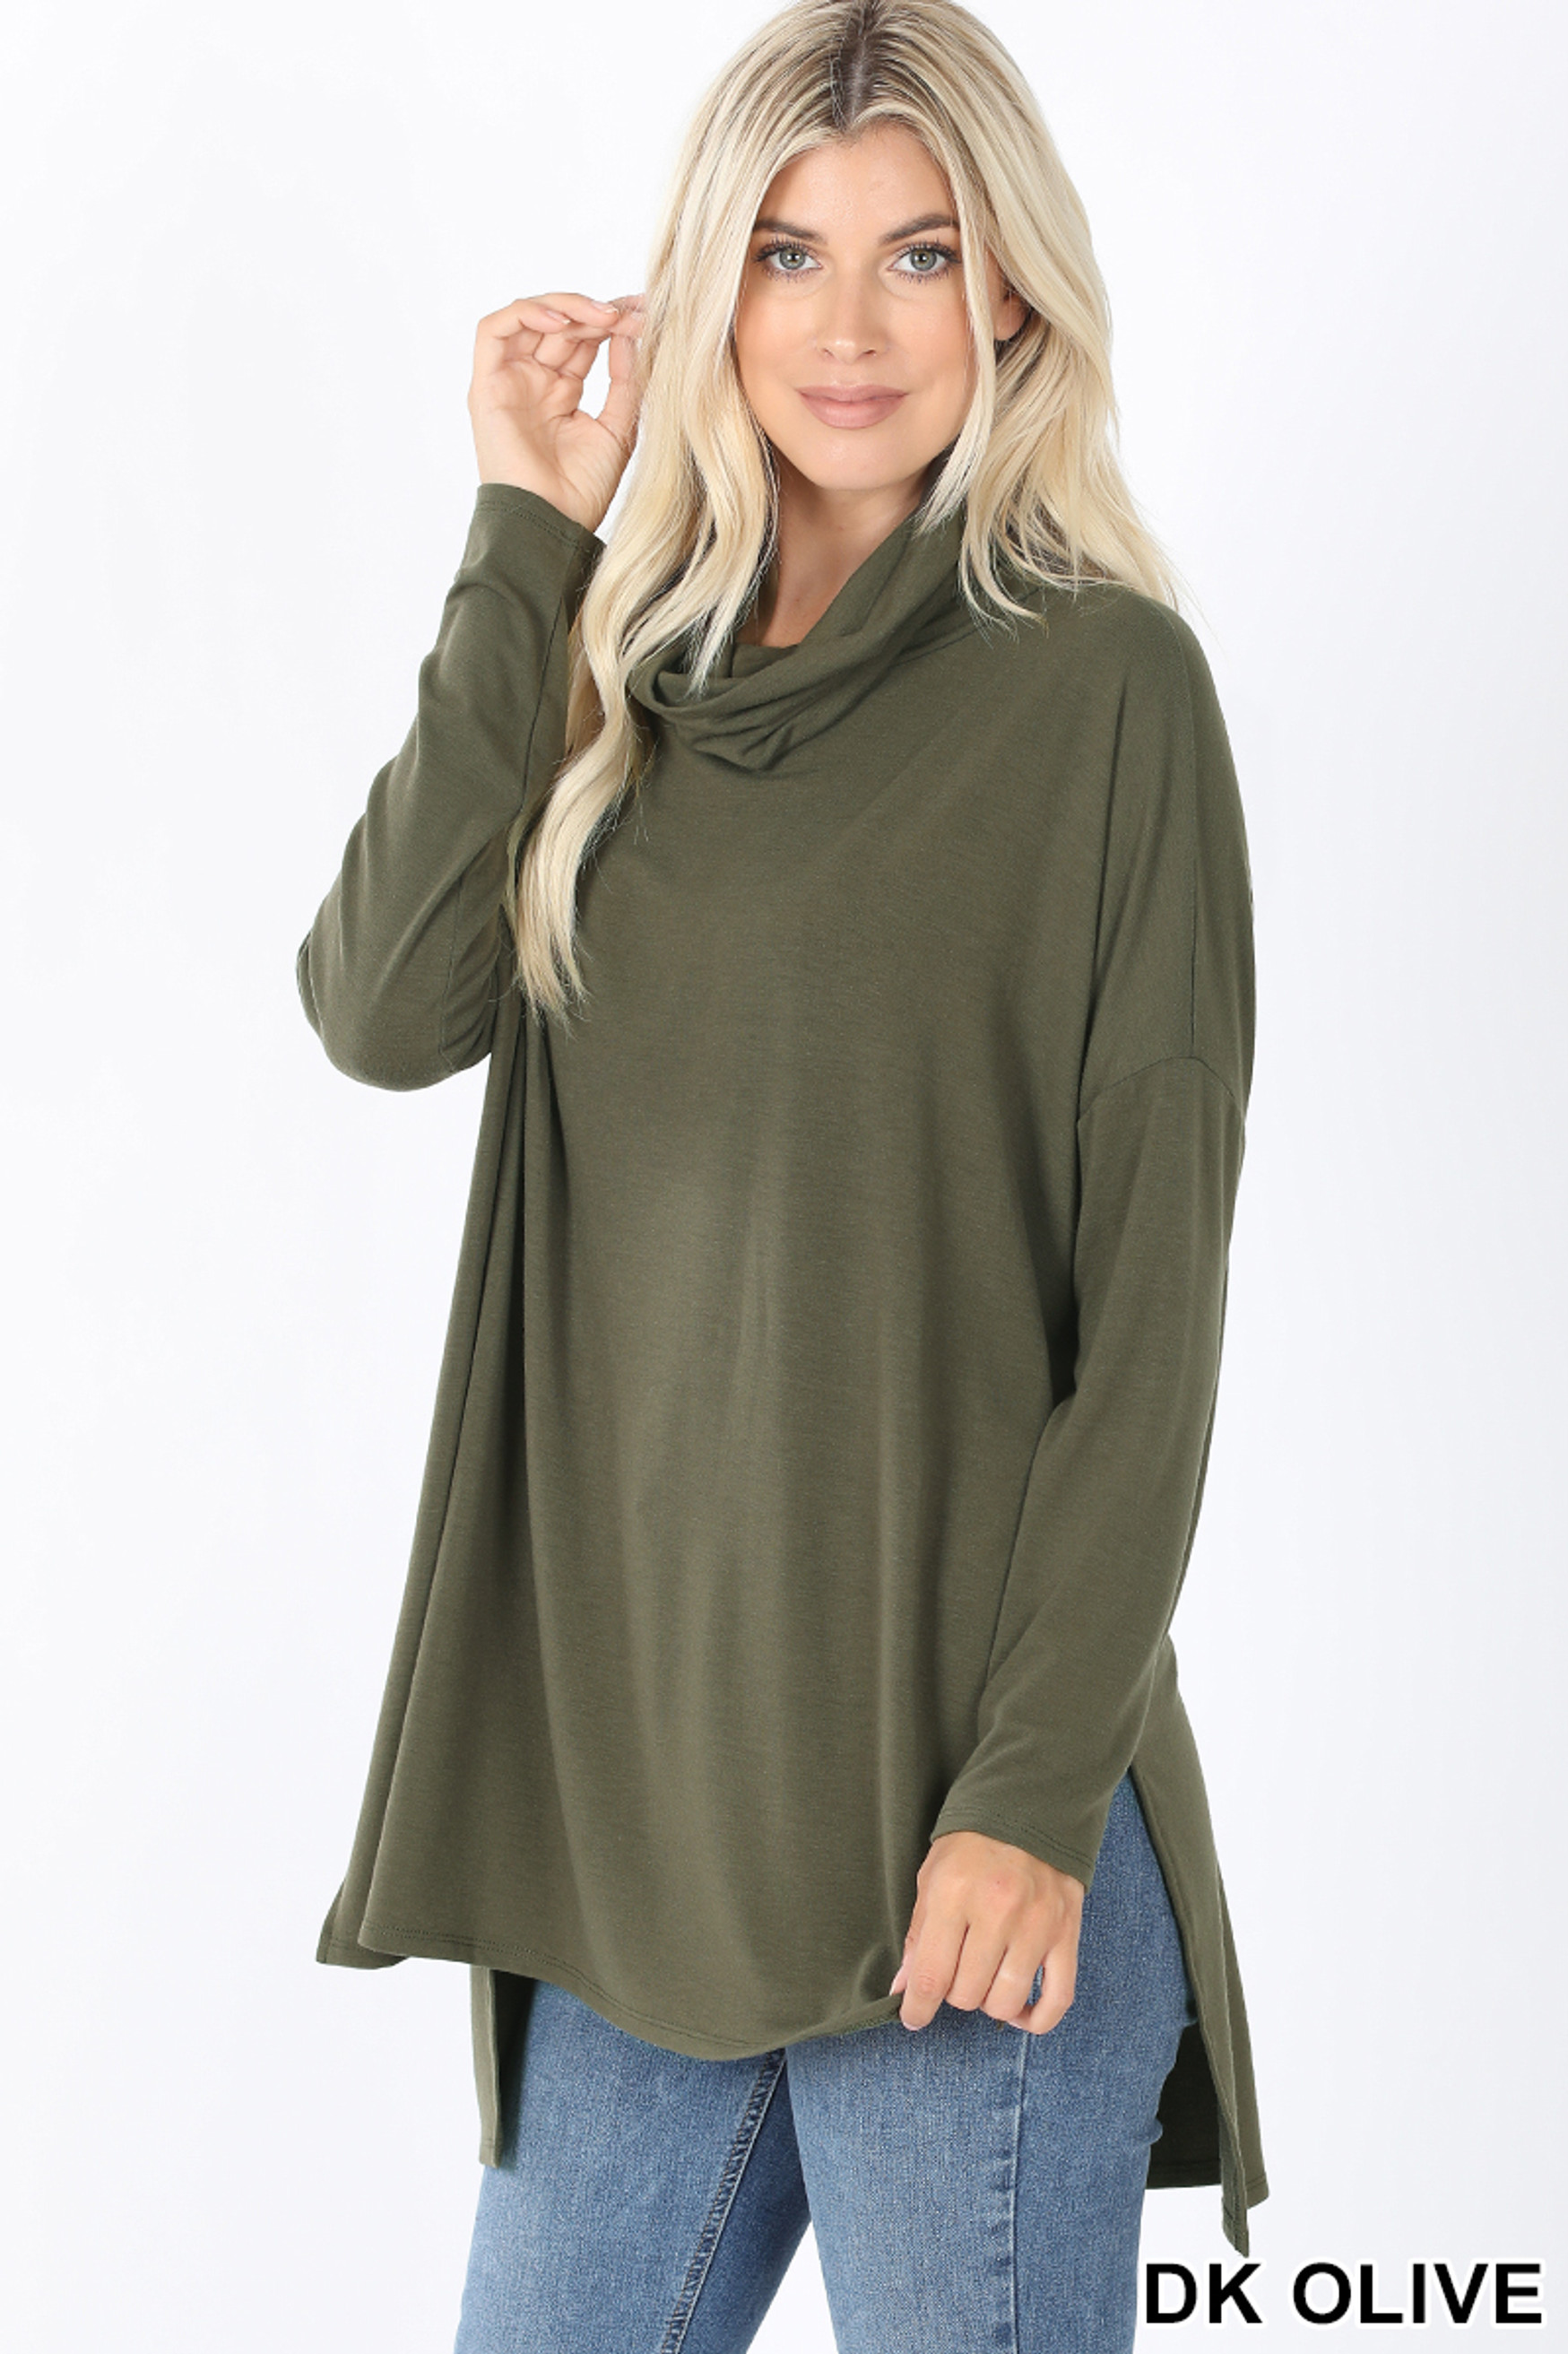 45 Degree Front image of Dark Olive Cowl Neck Hi-Low Long Sleeve Top